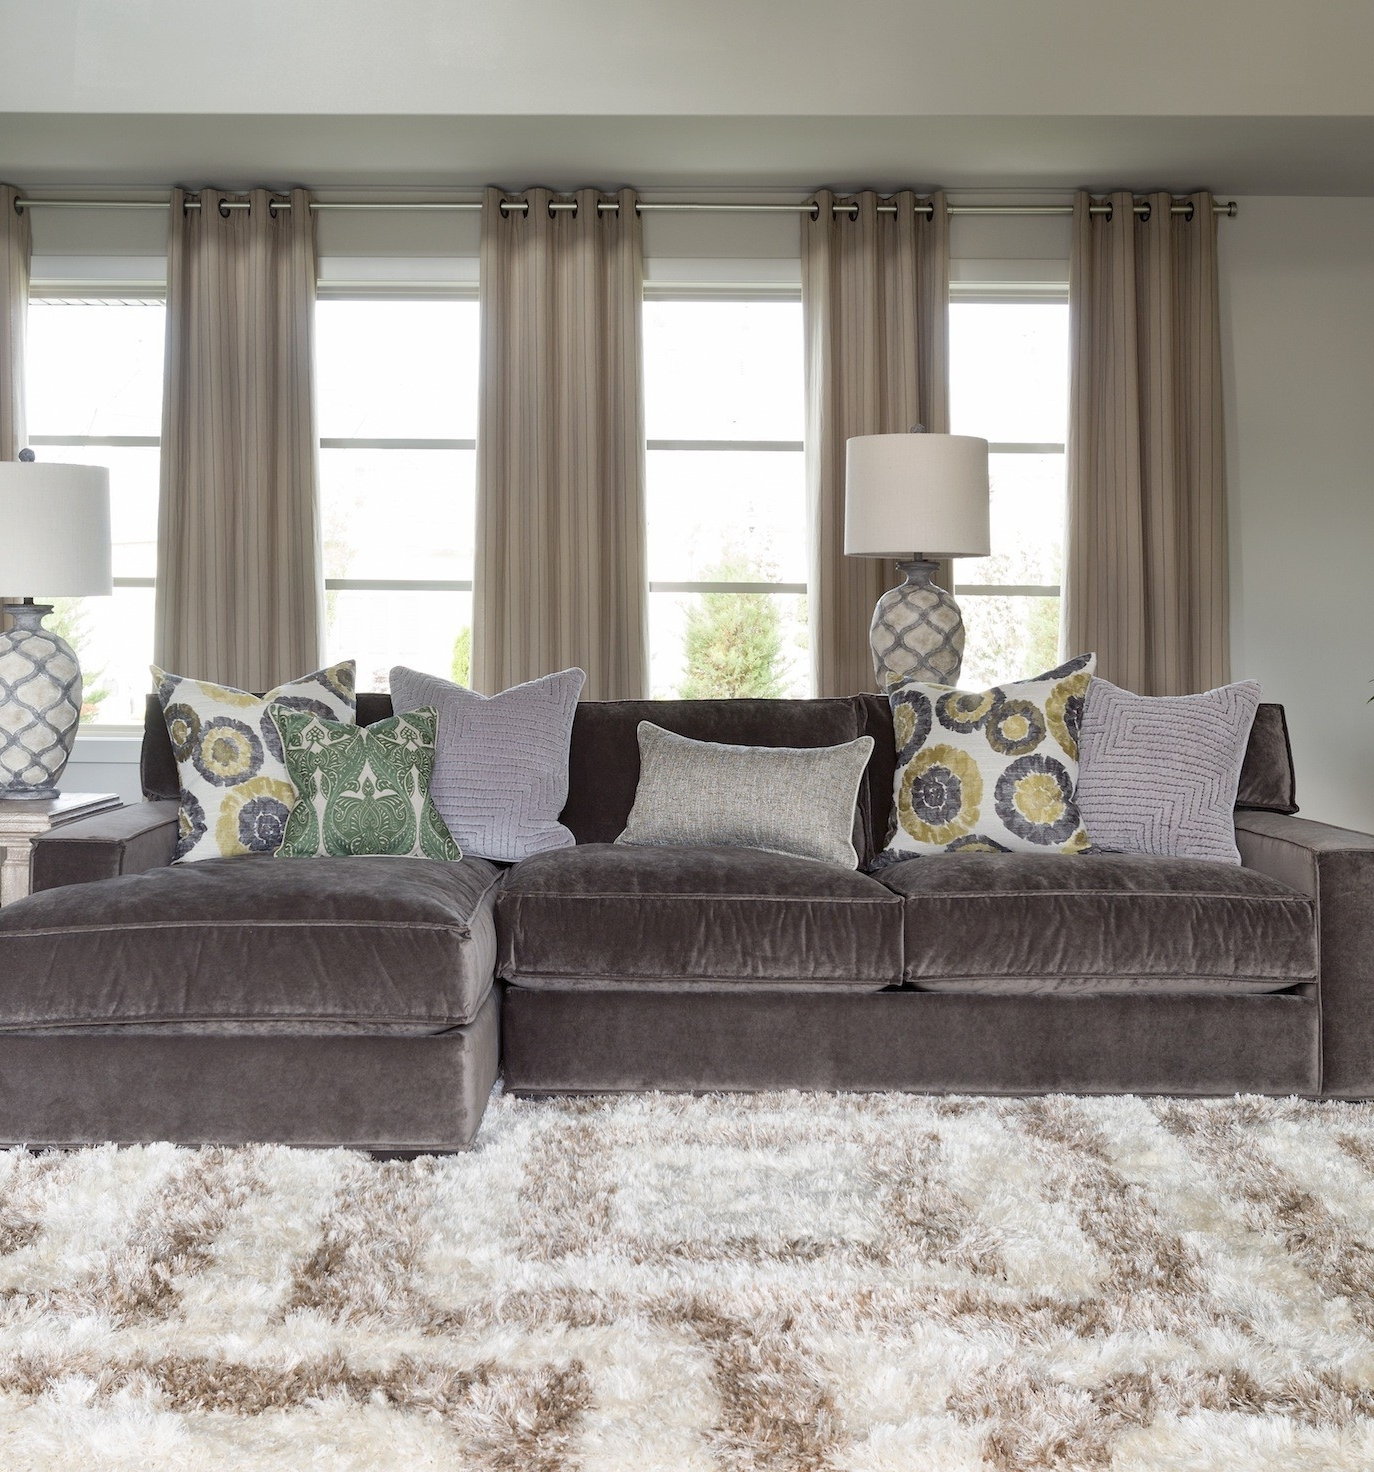 Most Recent Velvet Sectional Sofas With Regard To Interior: Gray Couches Living Room Be Equipped With Gray Velvet (View 3 of 15)